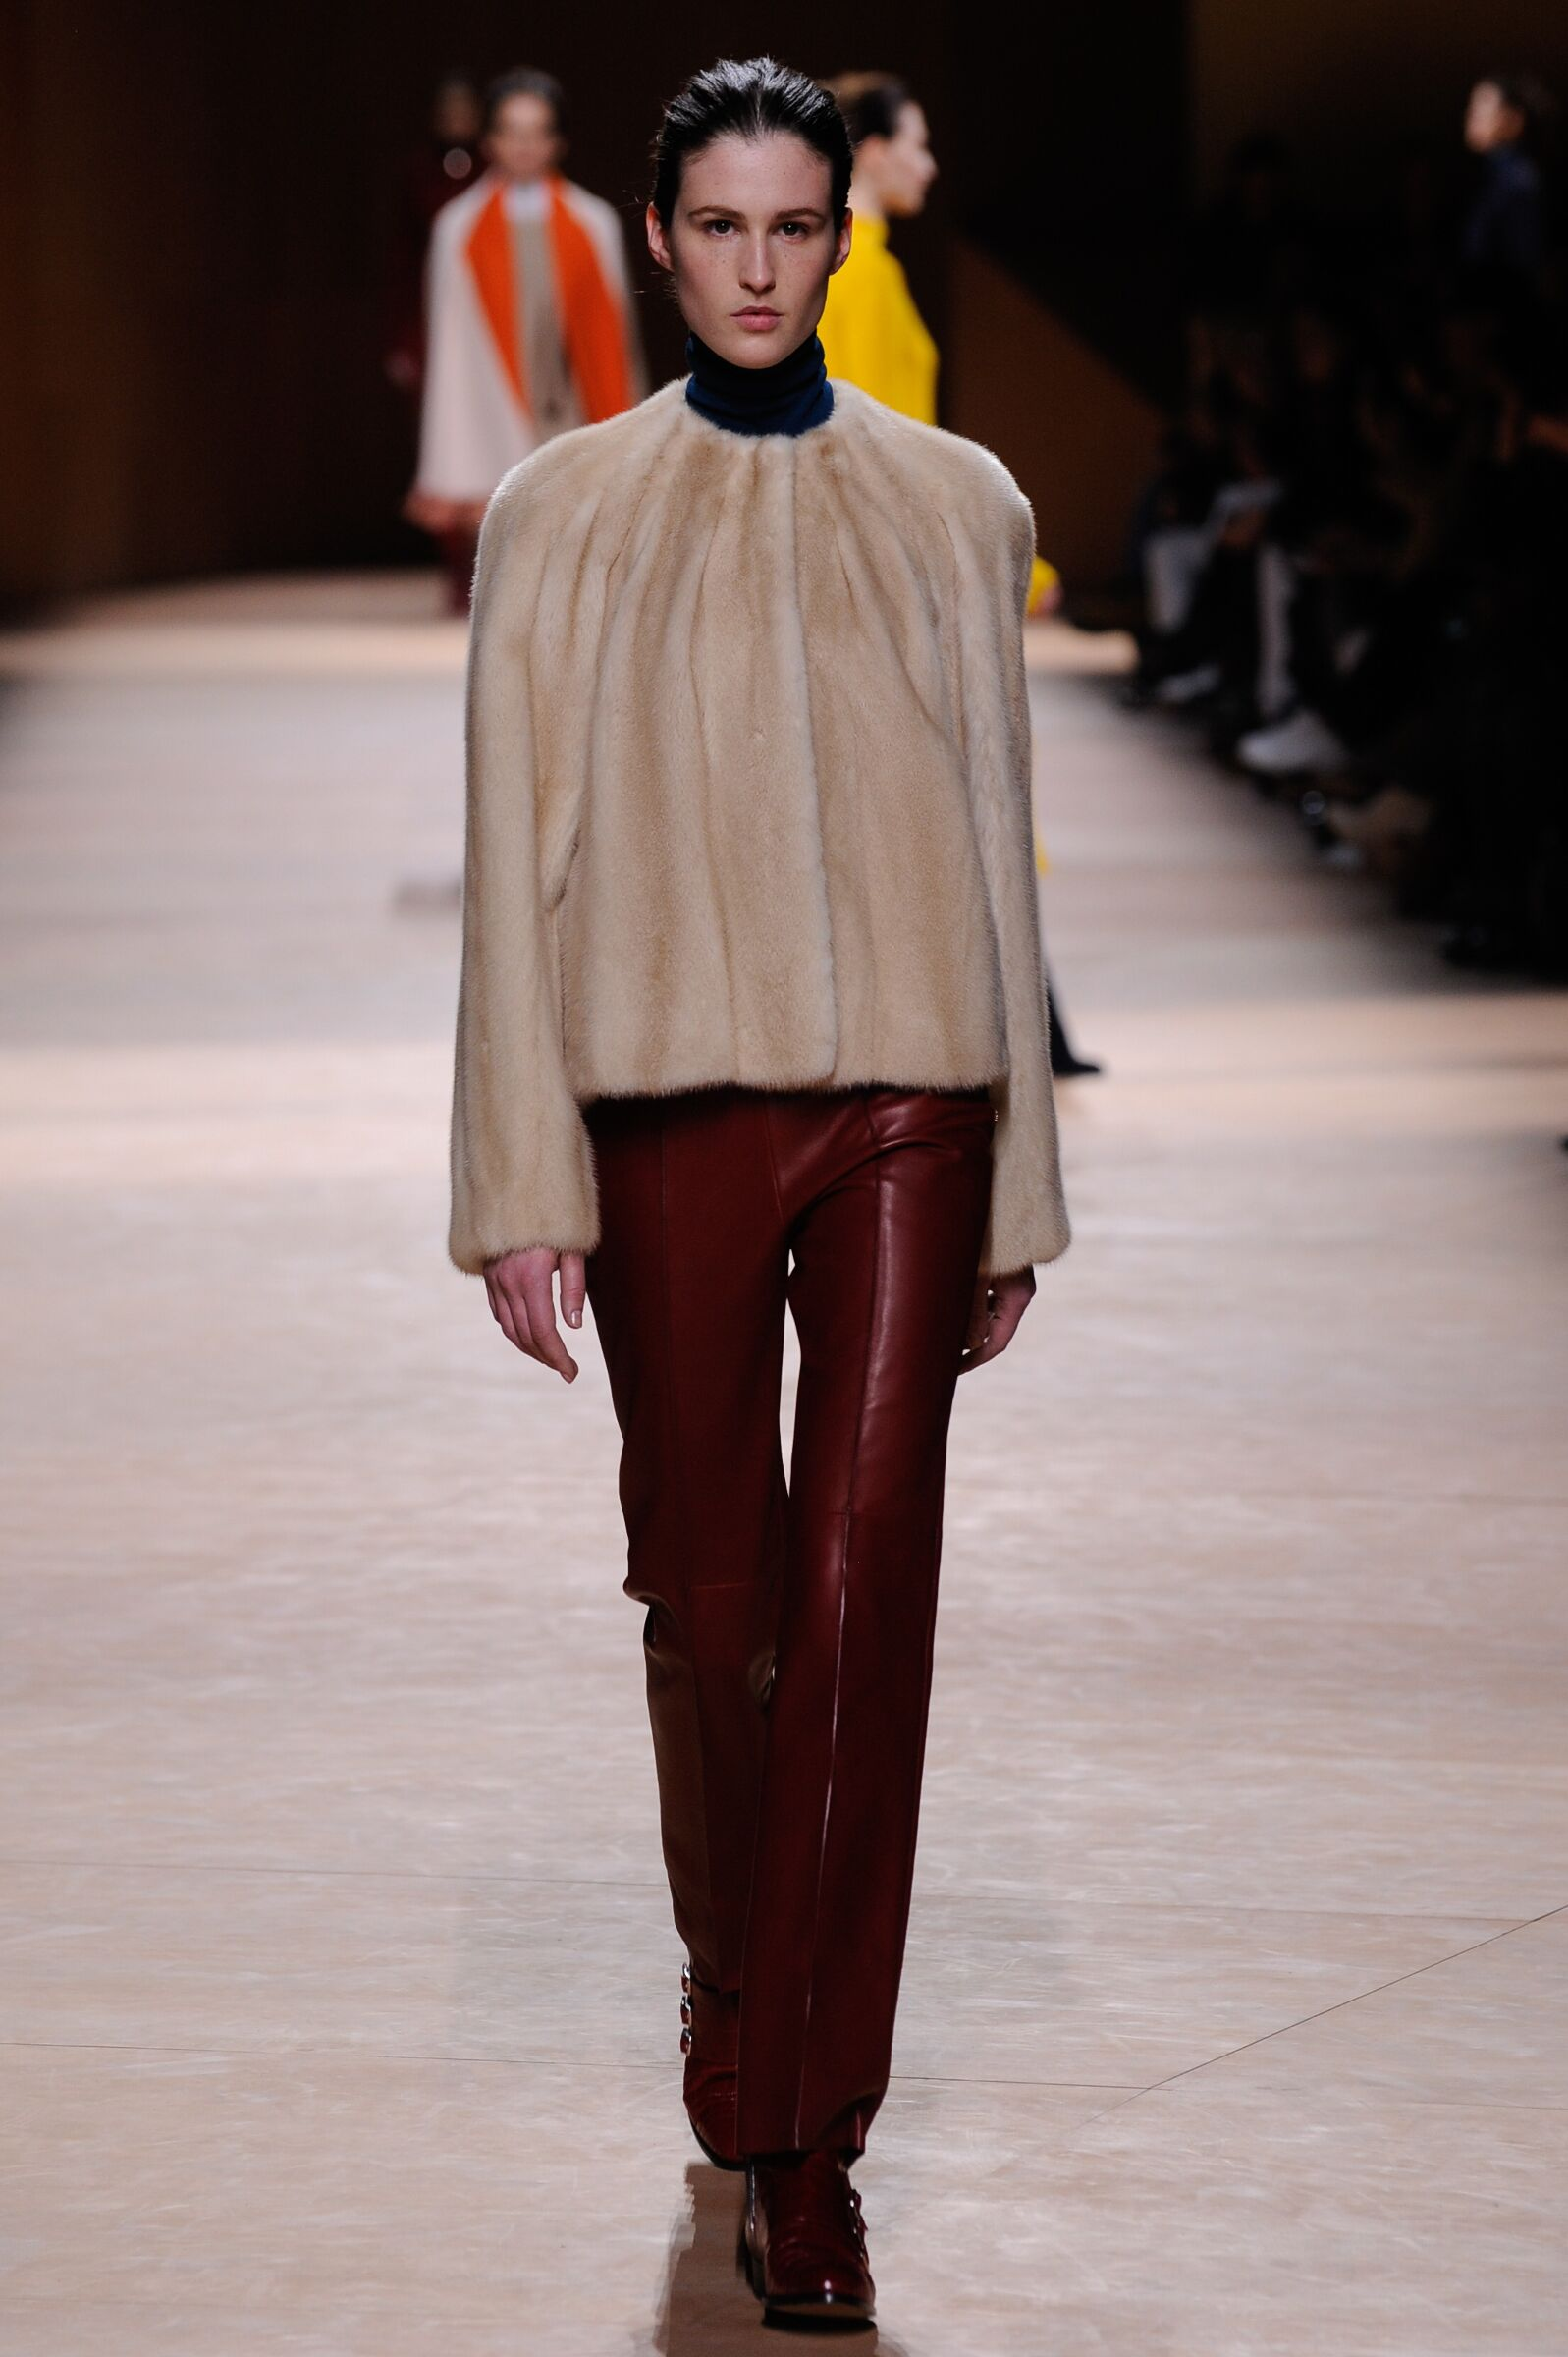 Catwalk Hermès Womenswear Collection Winter 2015